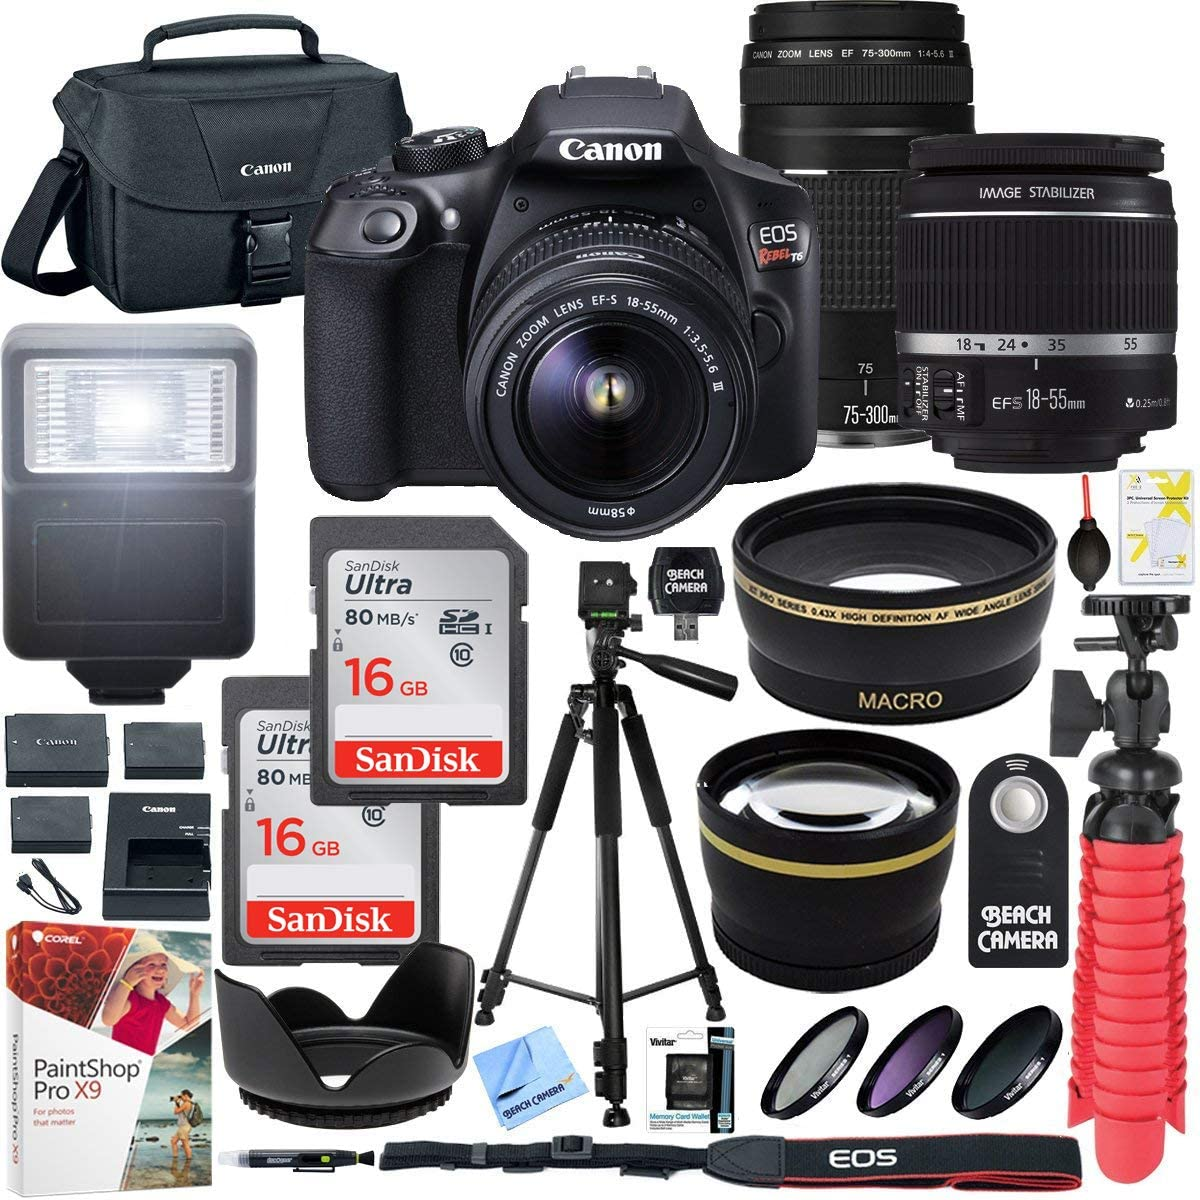 Canon T6 Eos Rebel Dslr Camera With Ef S 18 55mm F 3 5 5 6 Is Ii And Ef 75 300mm F 4 5 6 Iii Lens And Sandisk Memory Cards 16gb 2 Pack Plus Triple